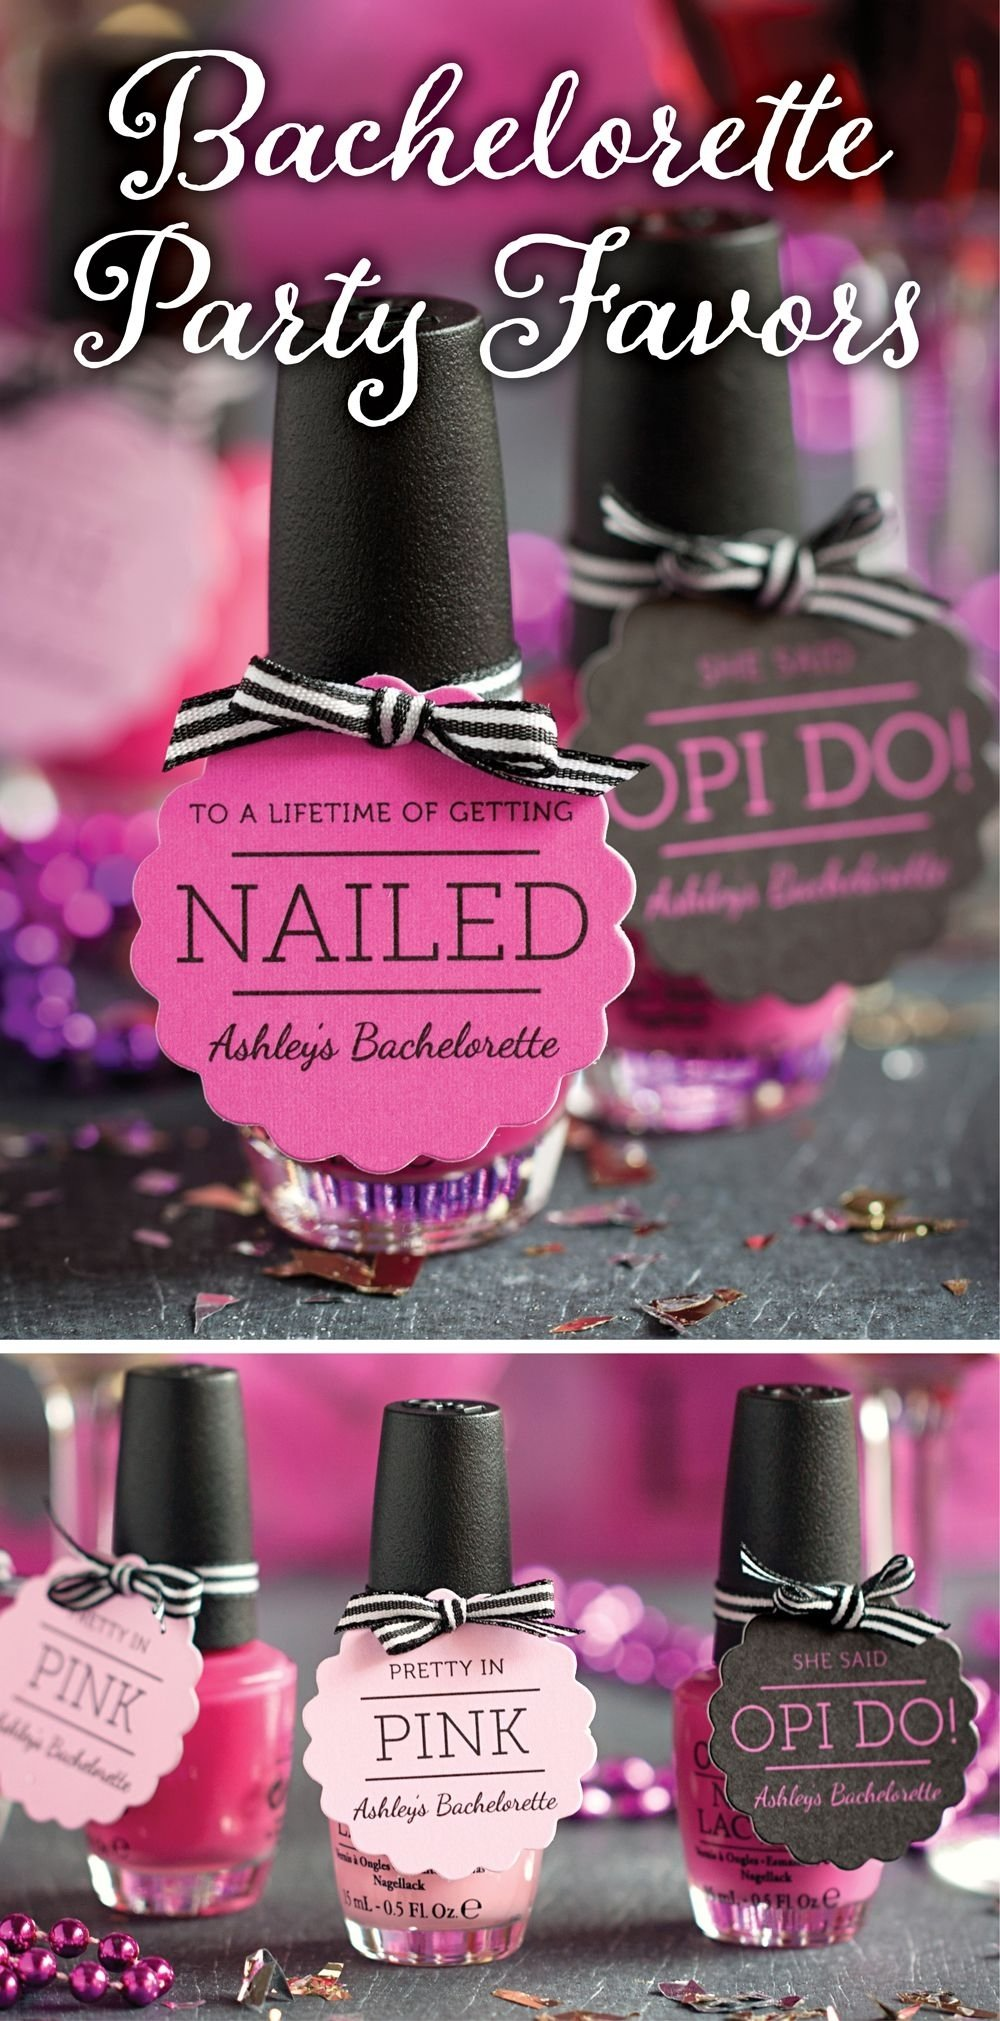 10 Unique Bachelorette Party Gift Ideas For Guests bachelorette party favor ideas opi nails bachelorette parties and opi 2020